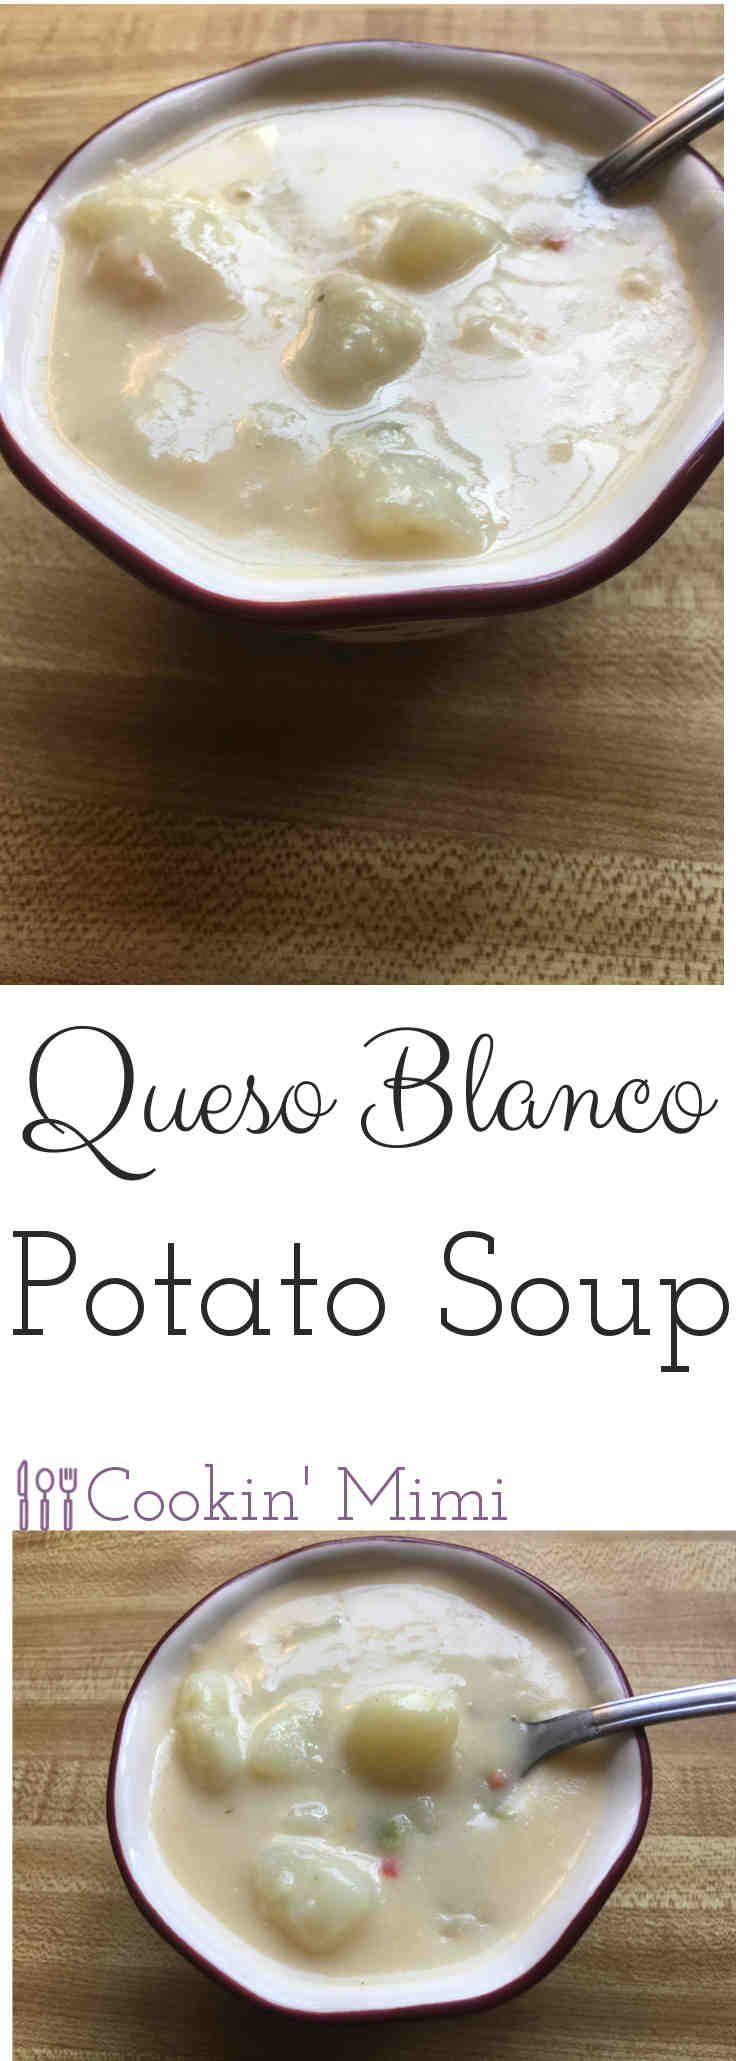 Queso Blanco Potato Soup is hearty and filling with a bit of Tex-Mex flair.